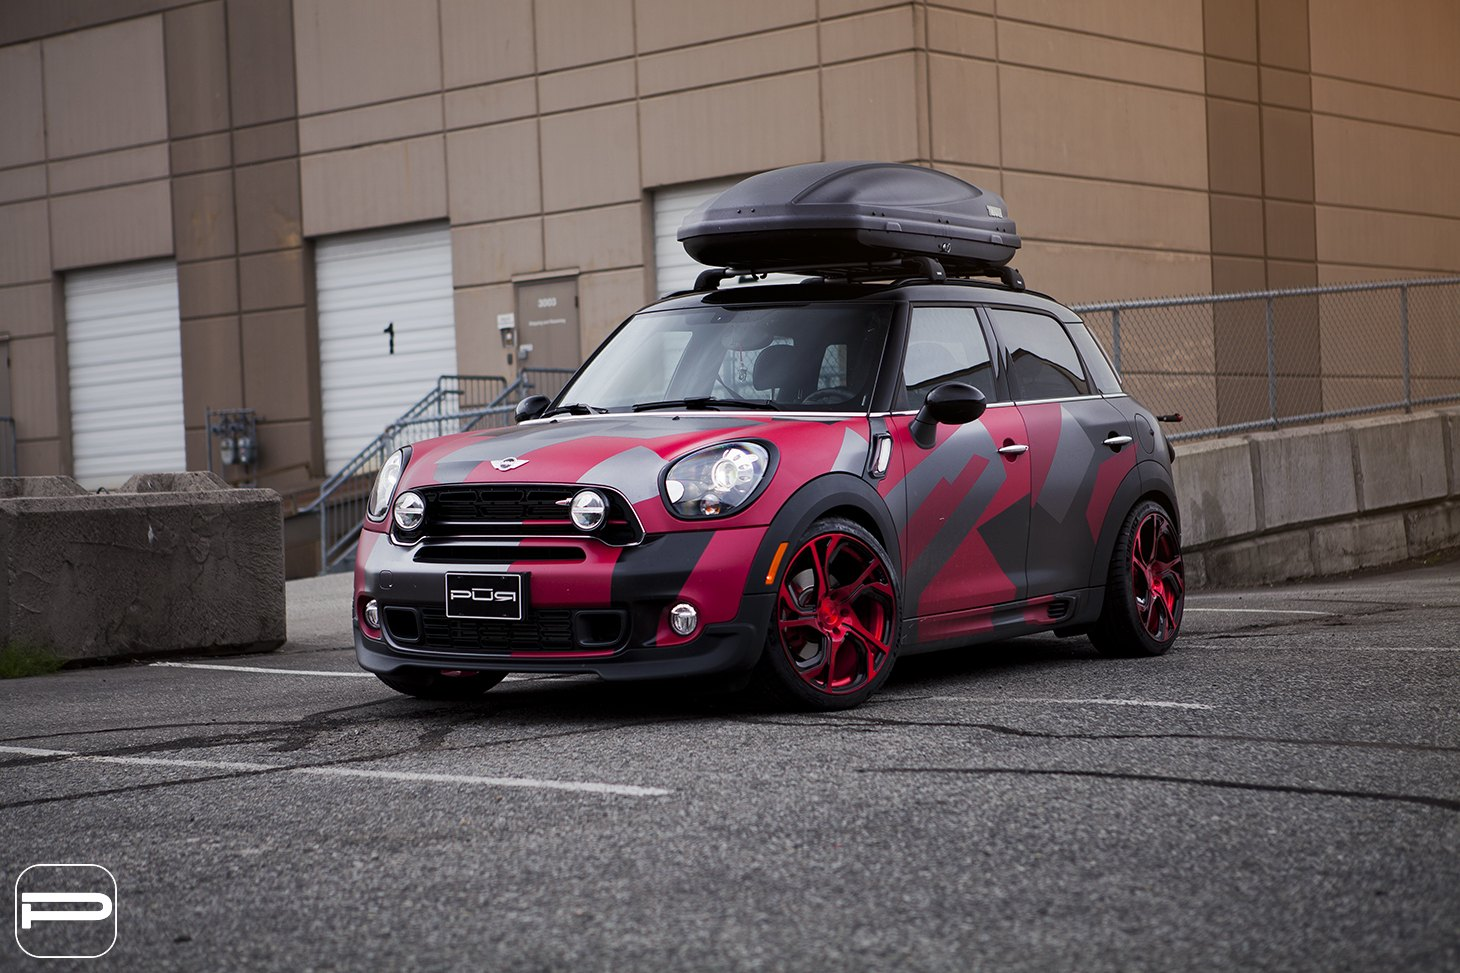 Truly Unique Custom Paint On Mini Countryman With Roof Rack That Grabs Attention Gallery